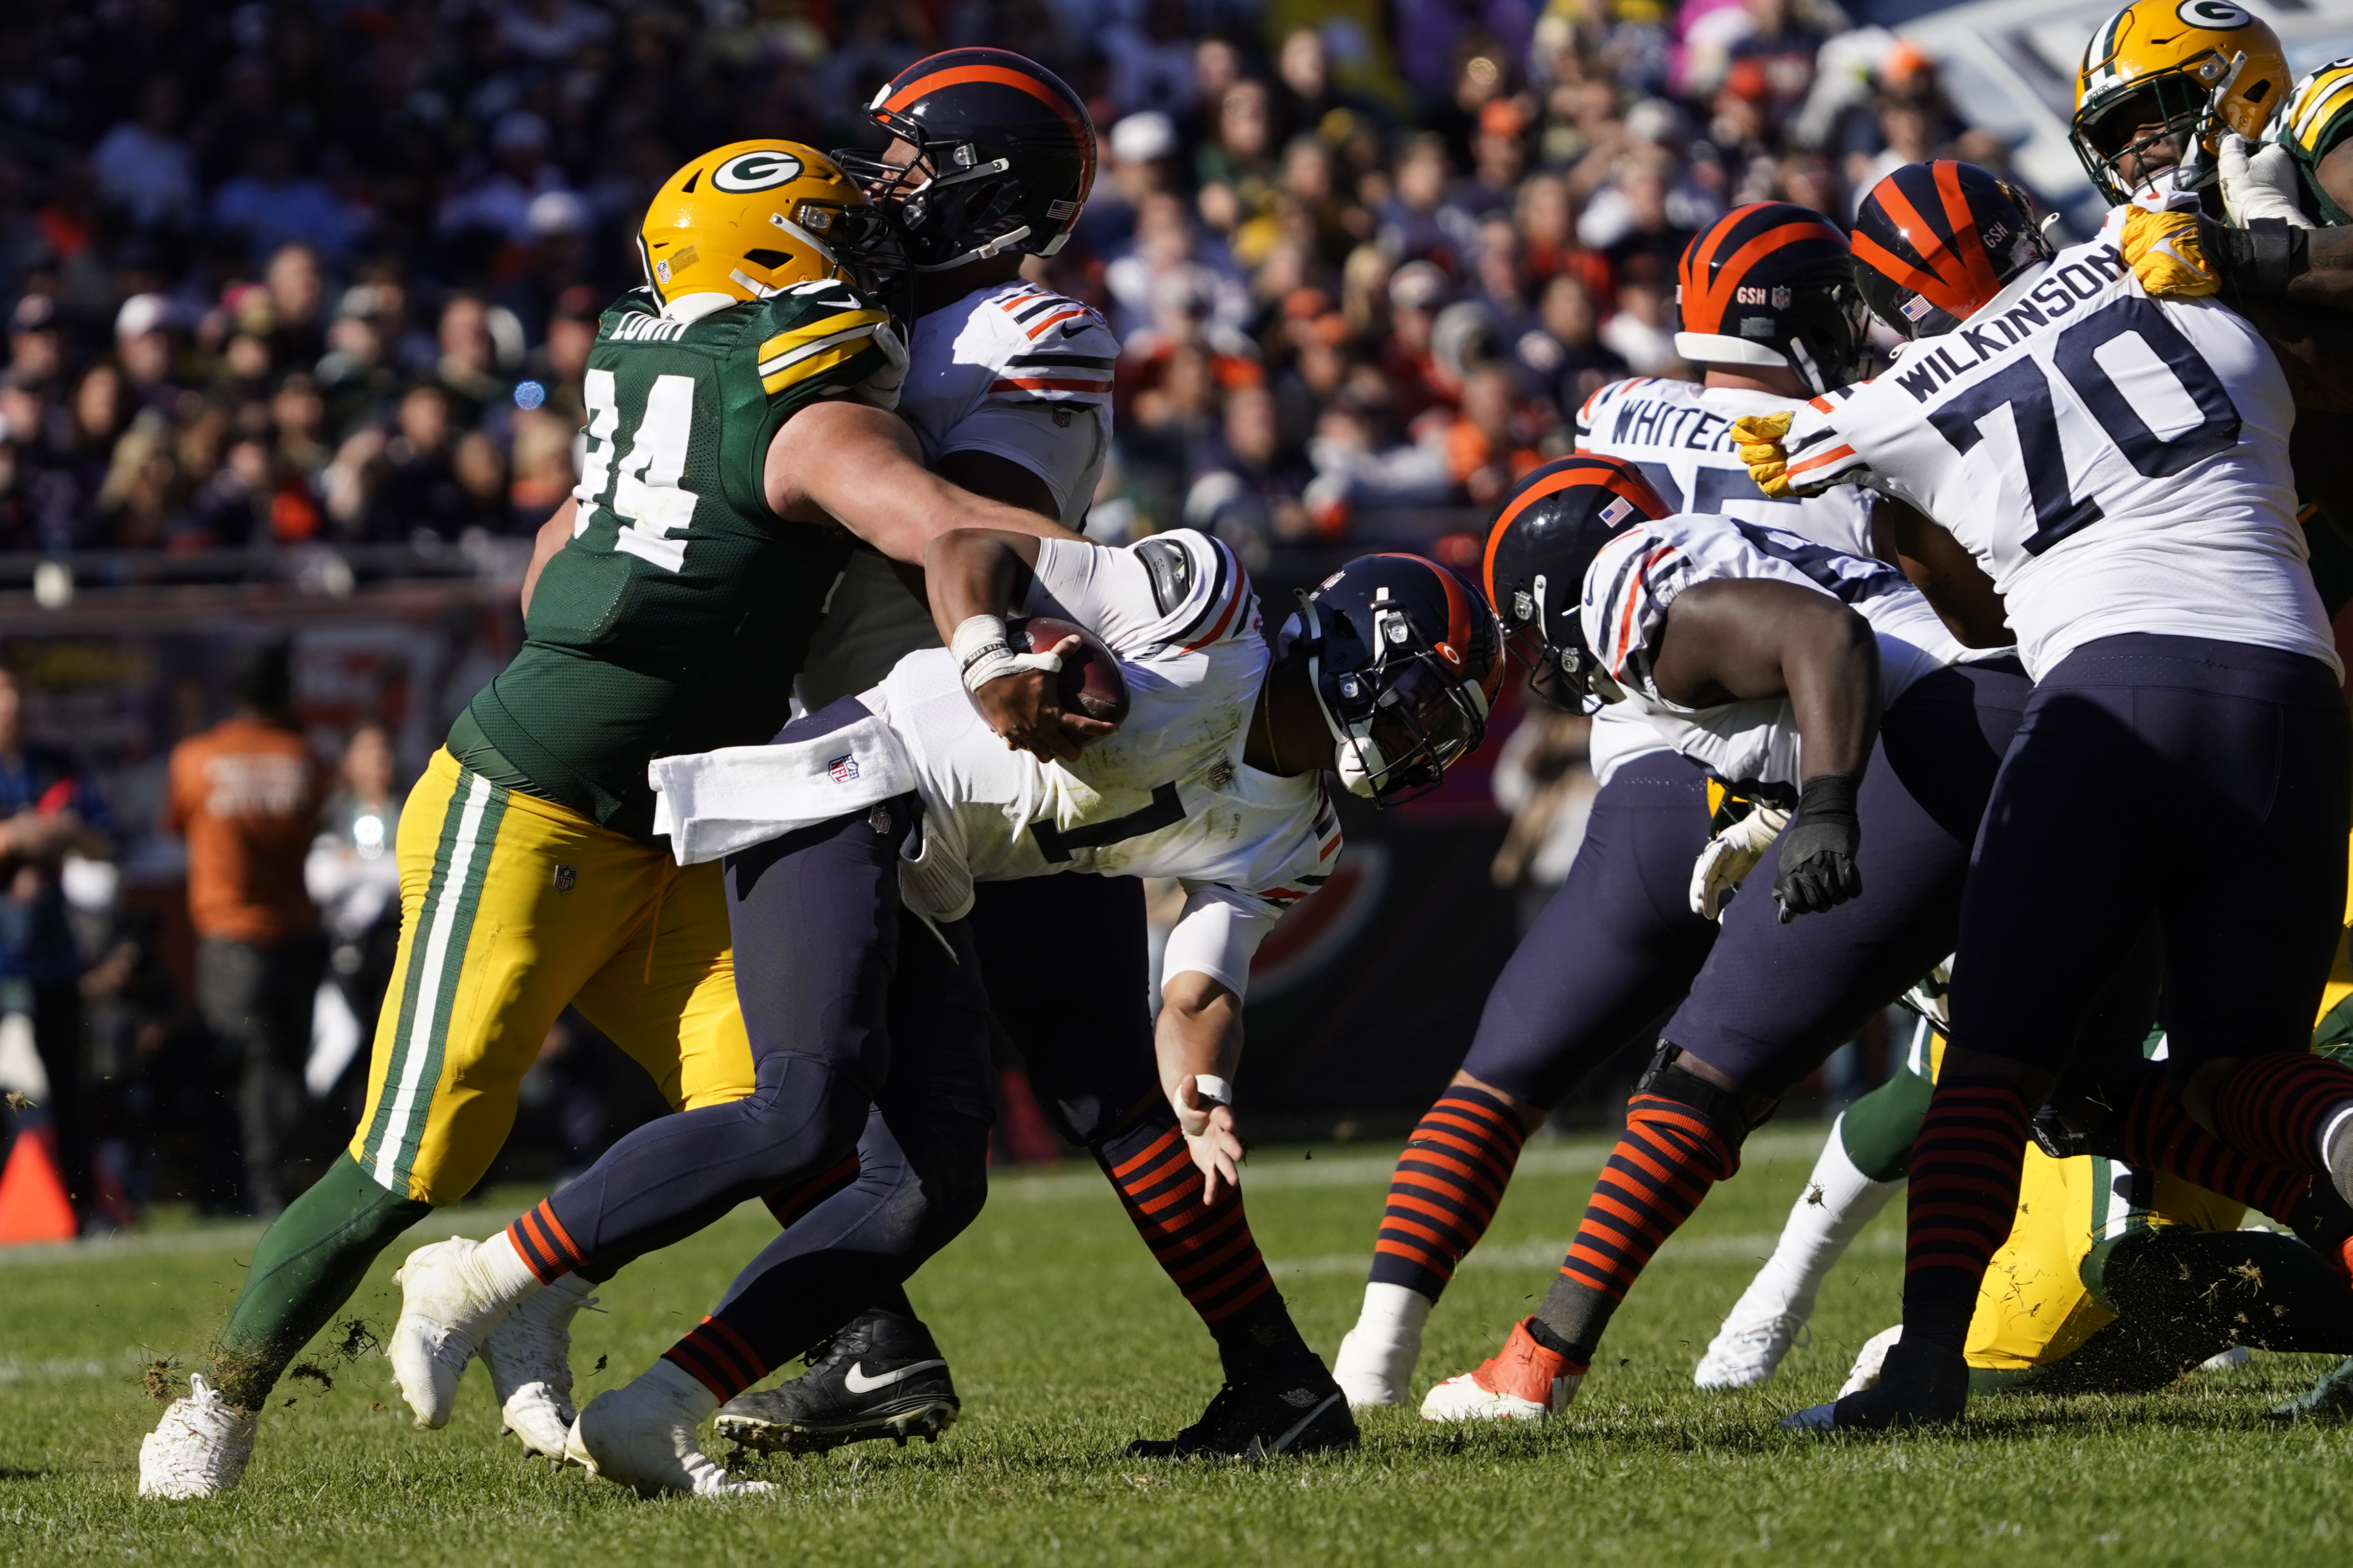 Bears rookie quarterback Justin Fields (1) was sacked four times last week in a 24-14 loss to the Packers at Soldier Field.